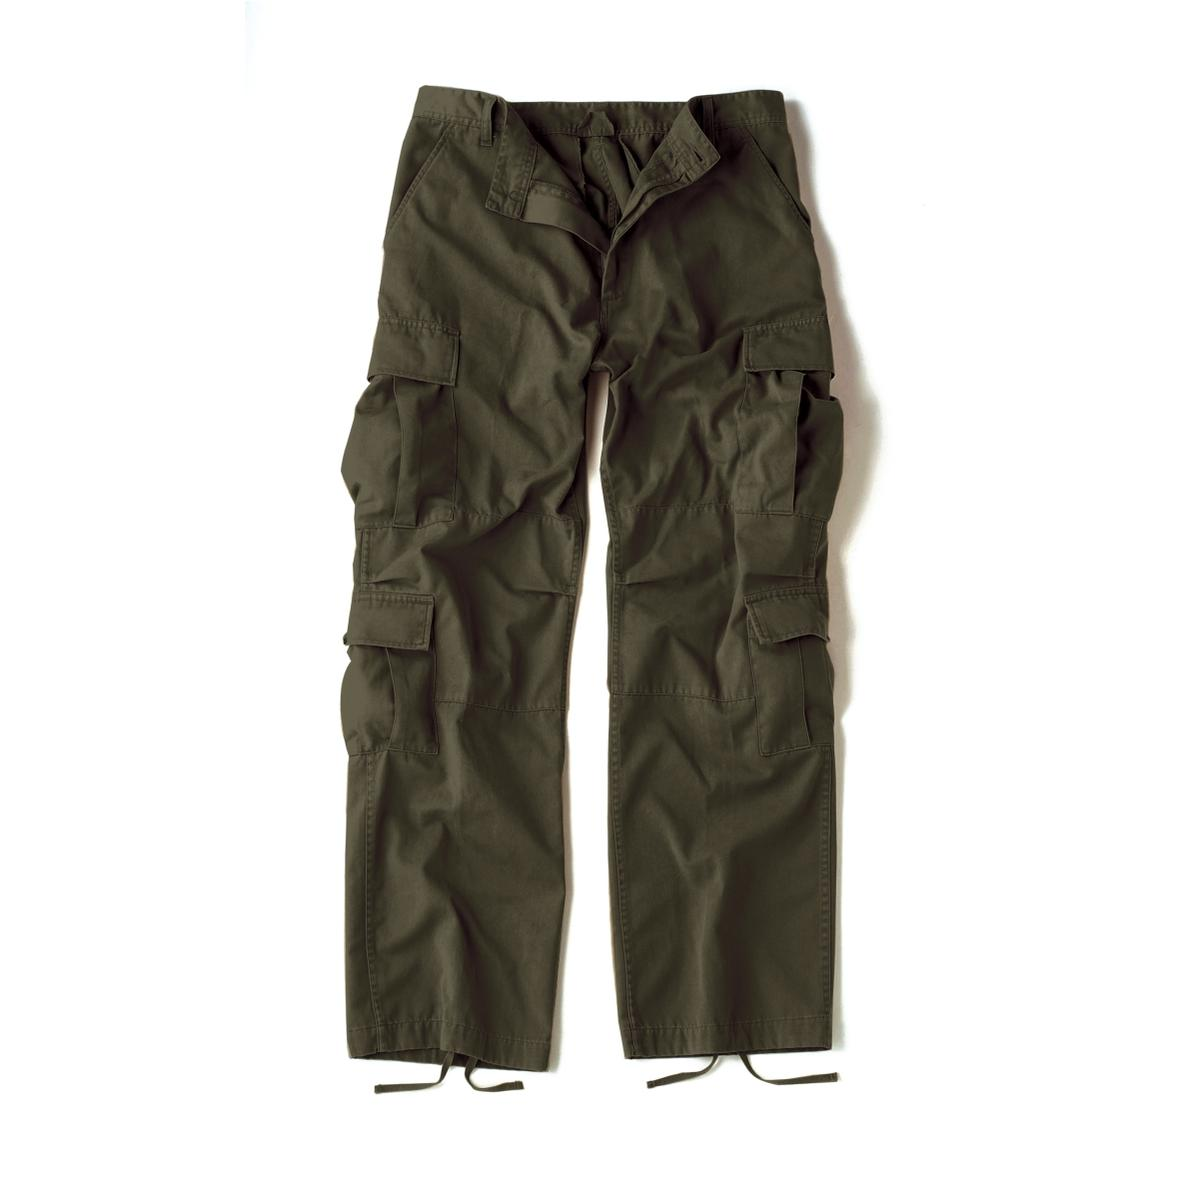 Details about Olive Drab Paratrooper Cargo Pants with 8 Pockets 1cb93f8c6ae